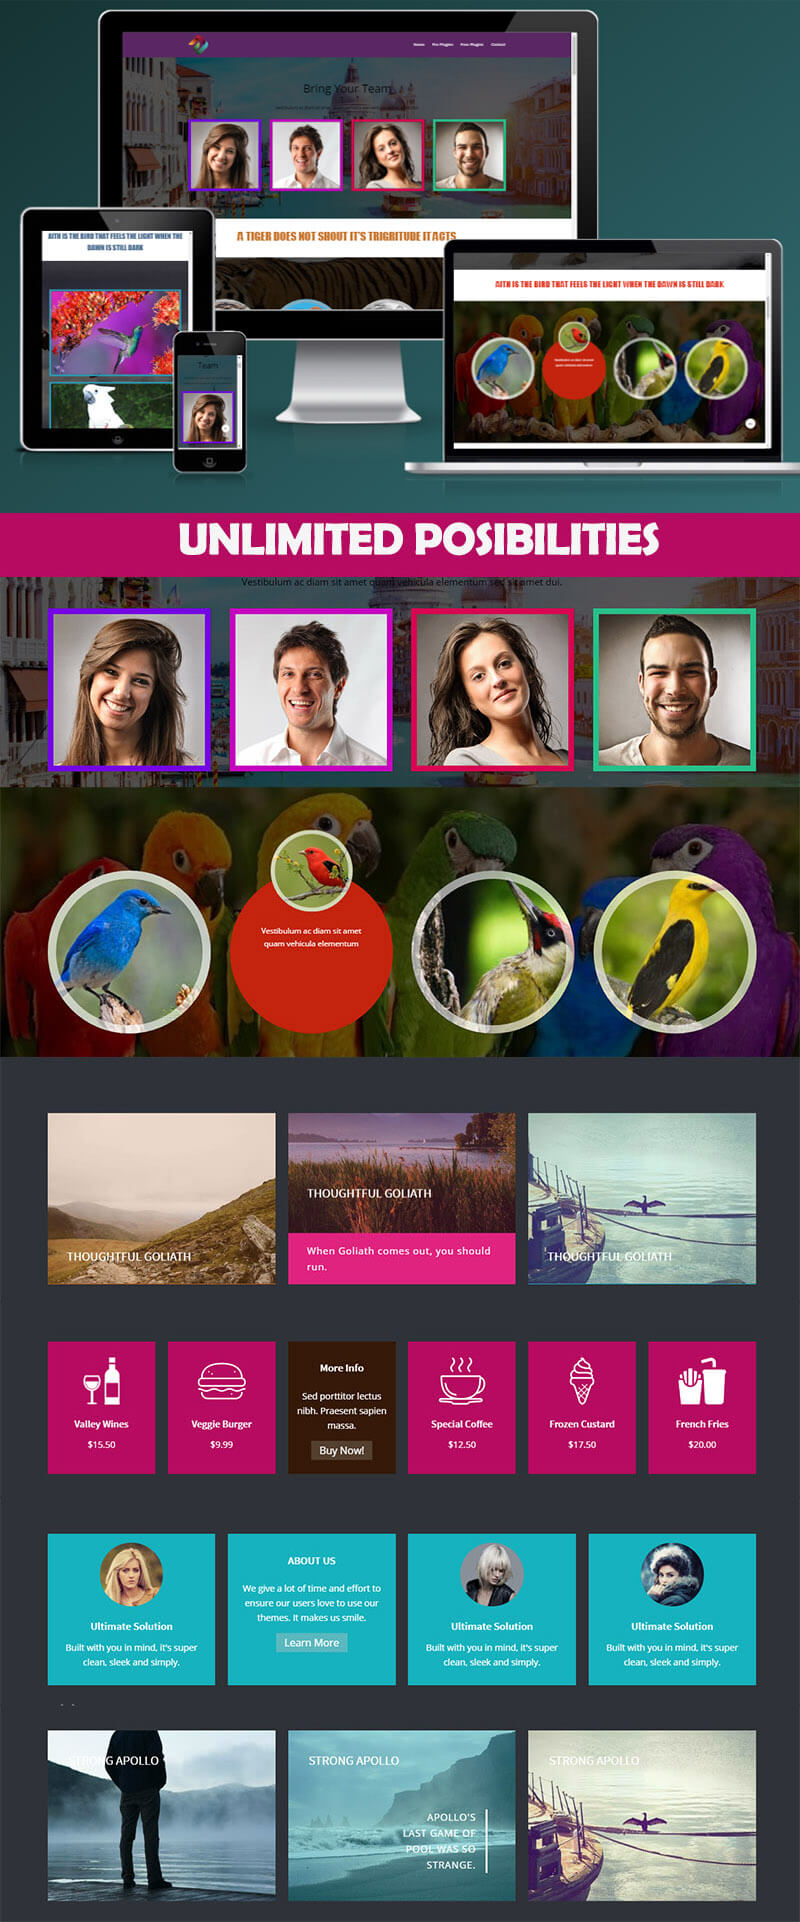 Image Hover Effects Addons for WPBakery Page Builder (formerly Visual Composer) - 1